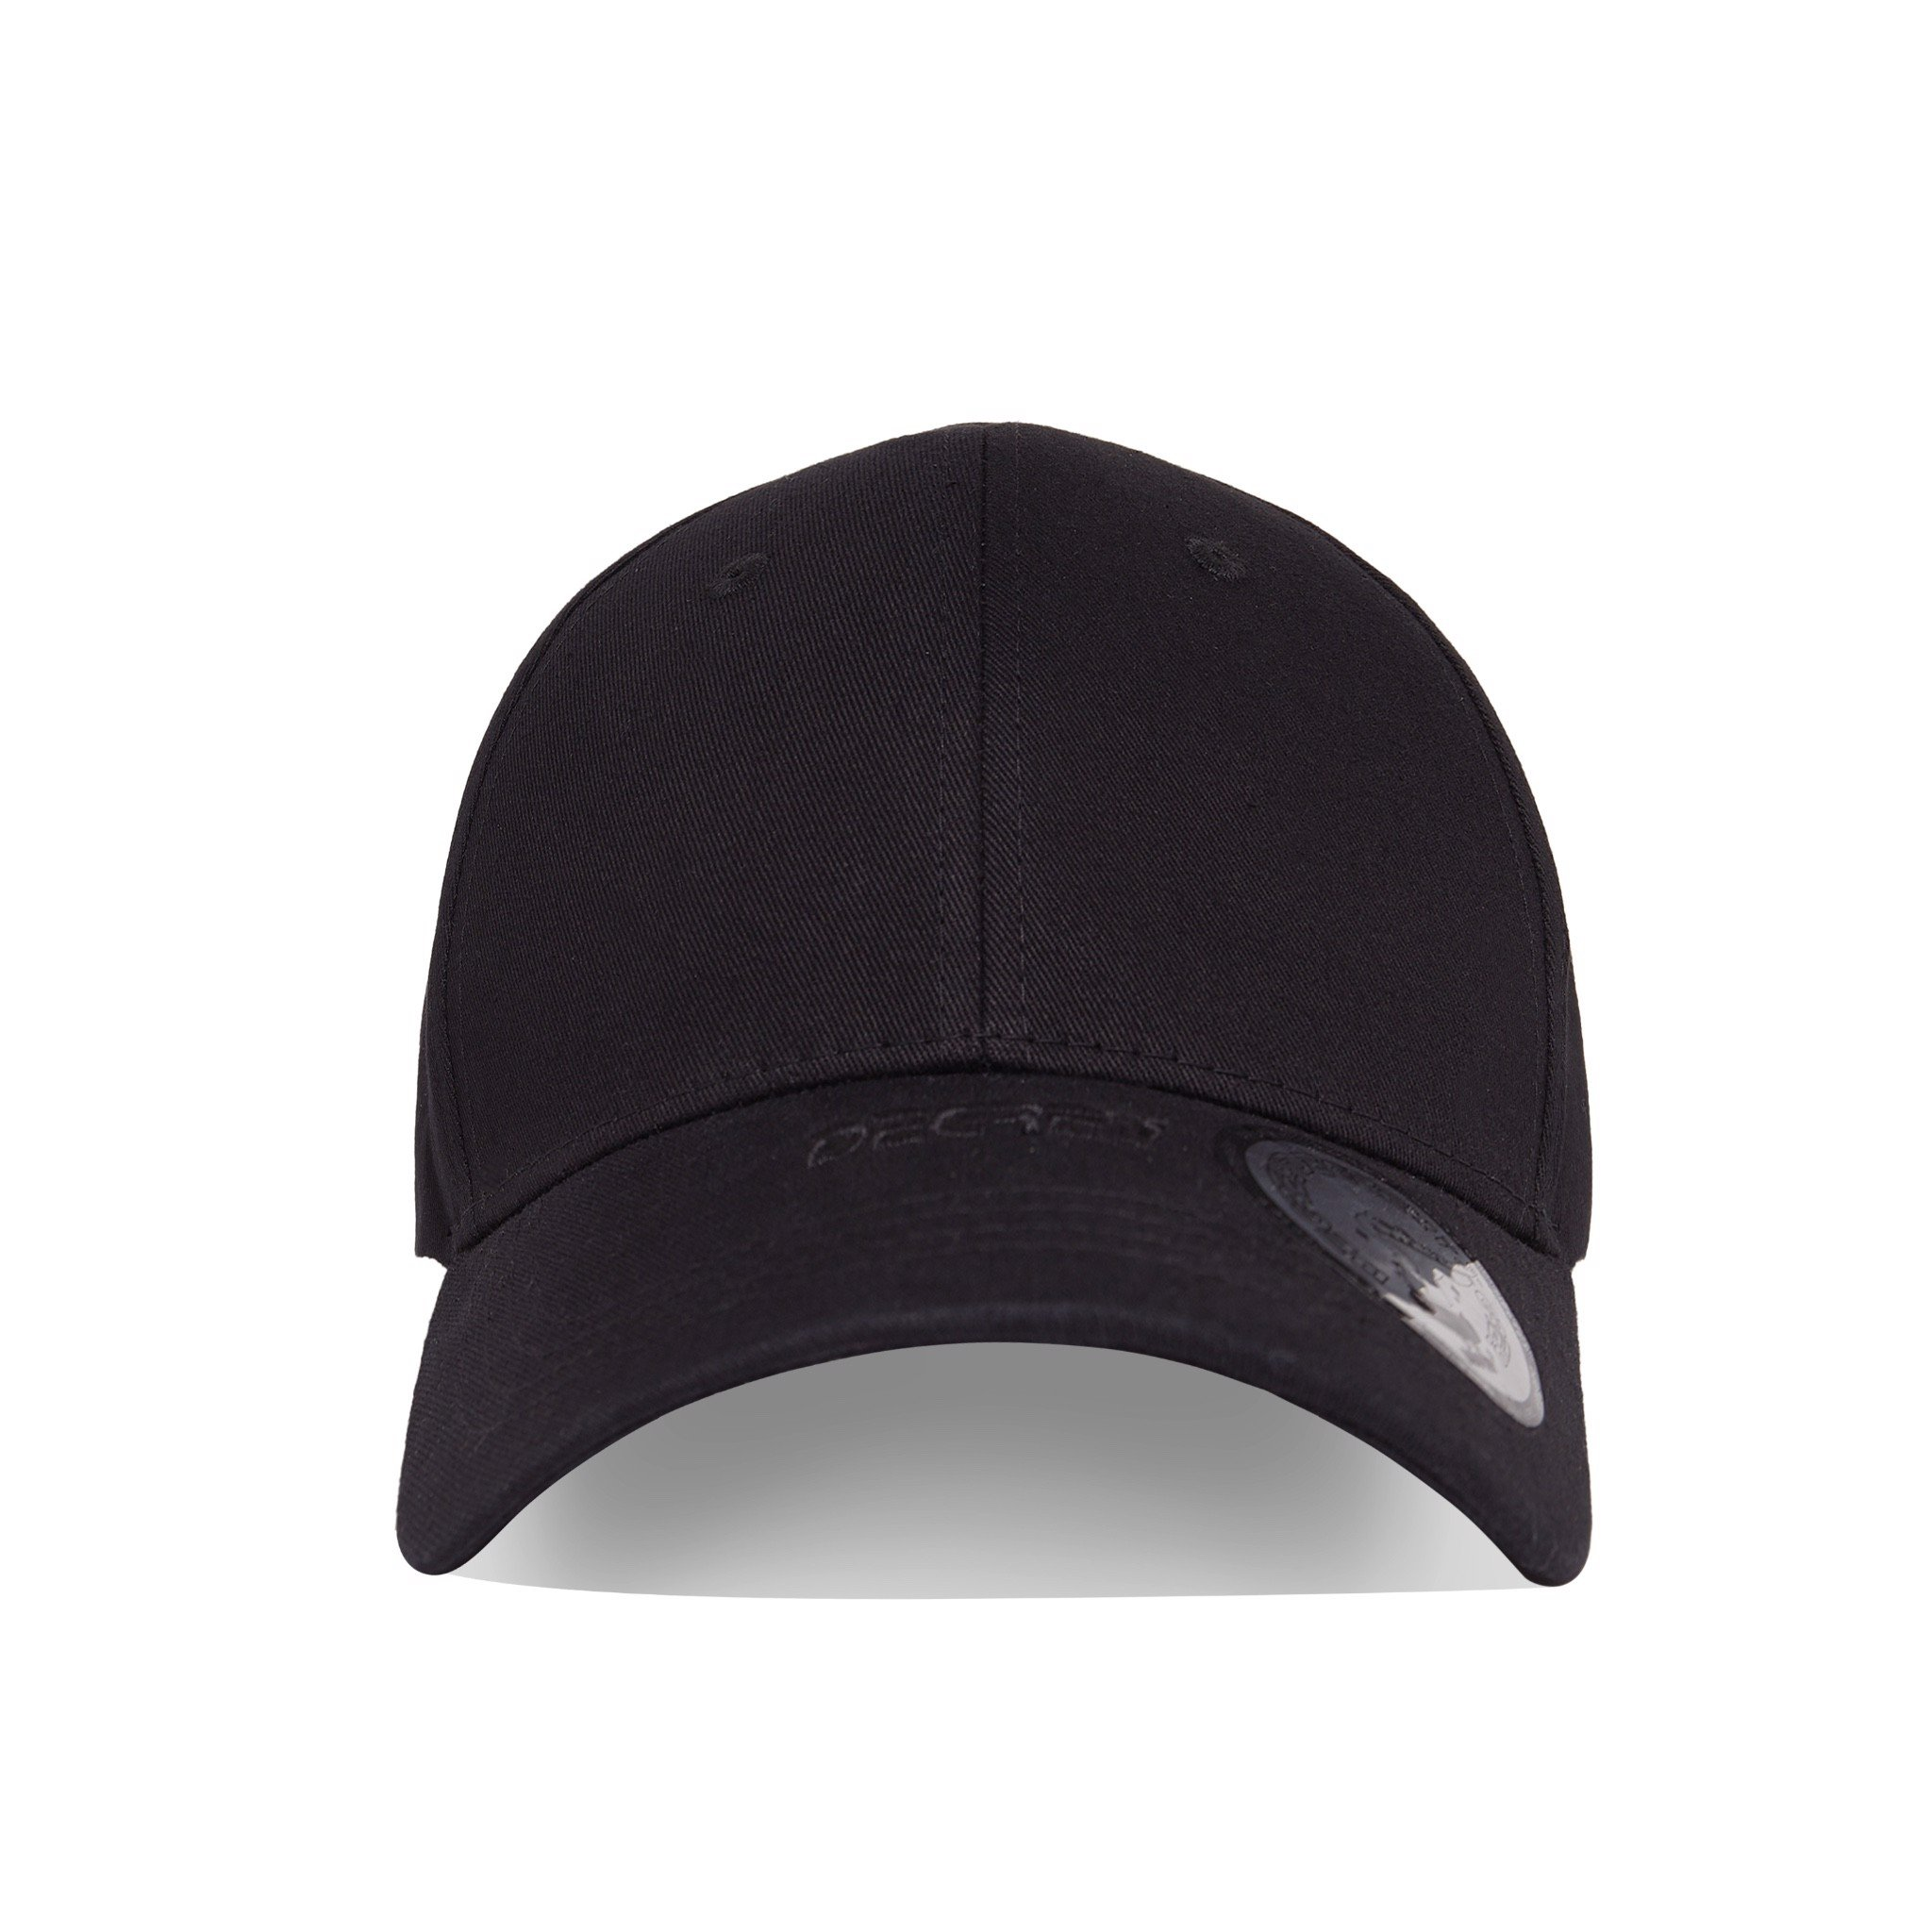 Degrey Basic Cap BLACK - DBC ĐEN